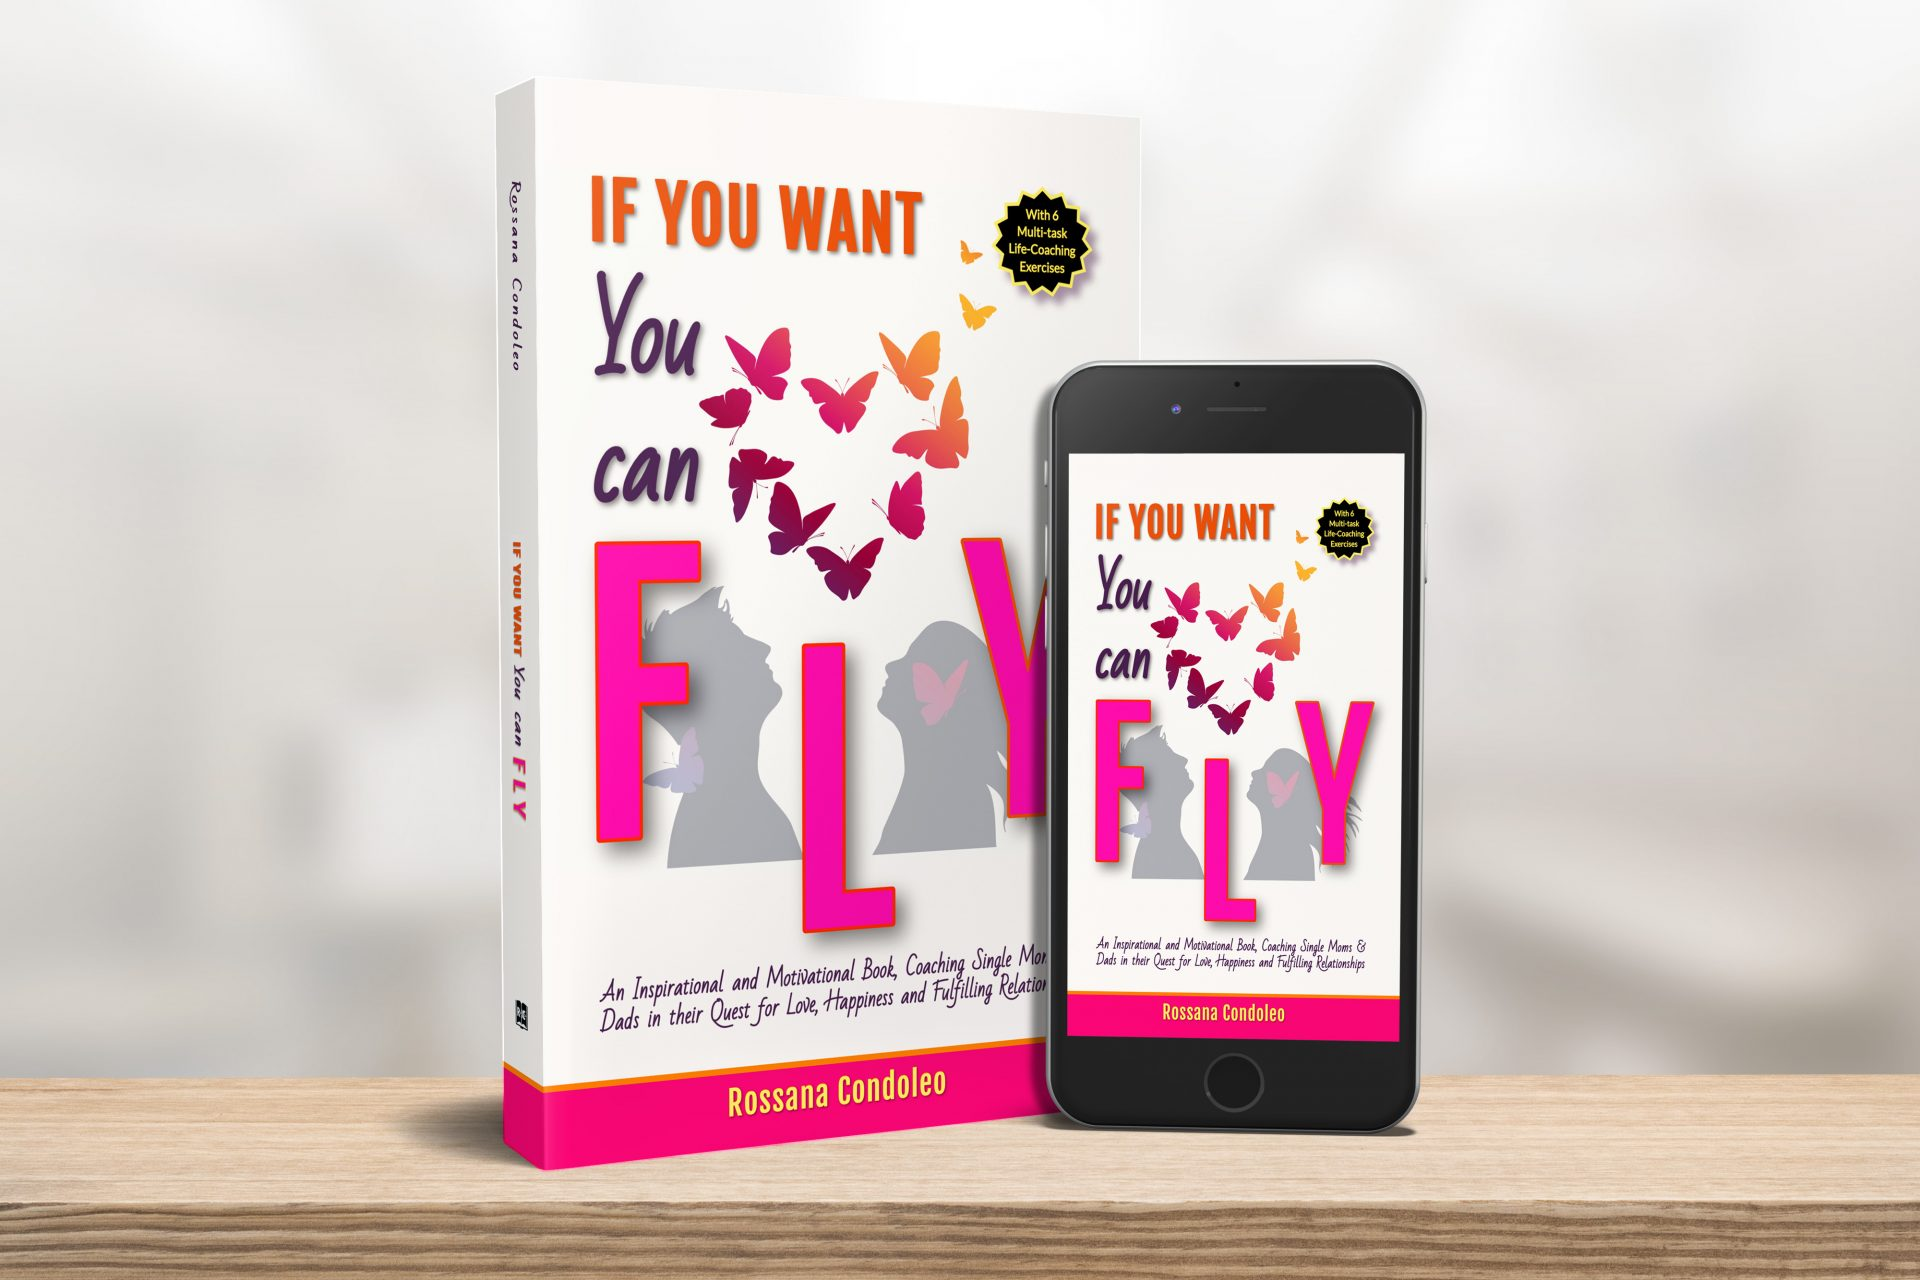 paperback and ebook of the single parent book If You Want You Can Fly by Rossana Condoleo